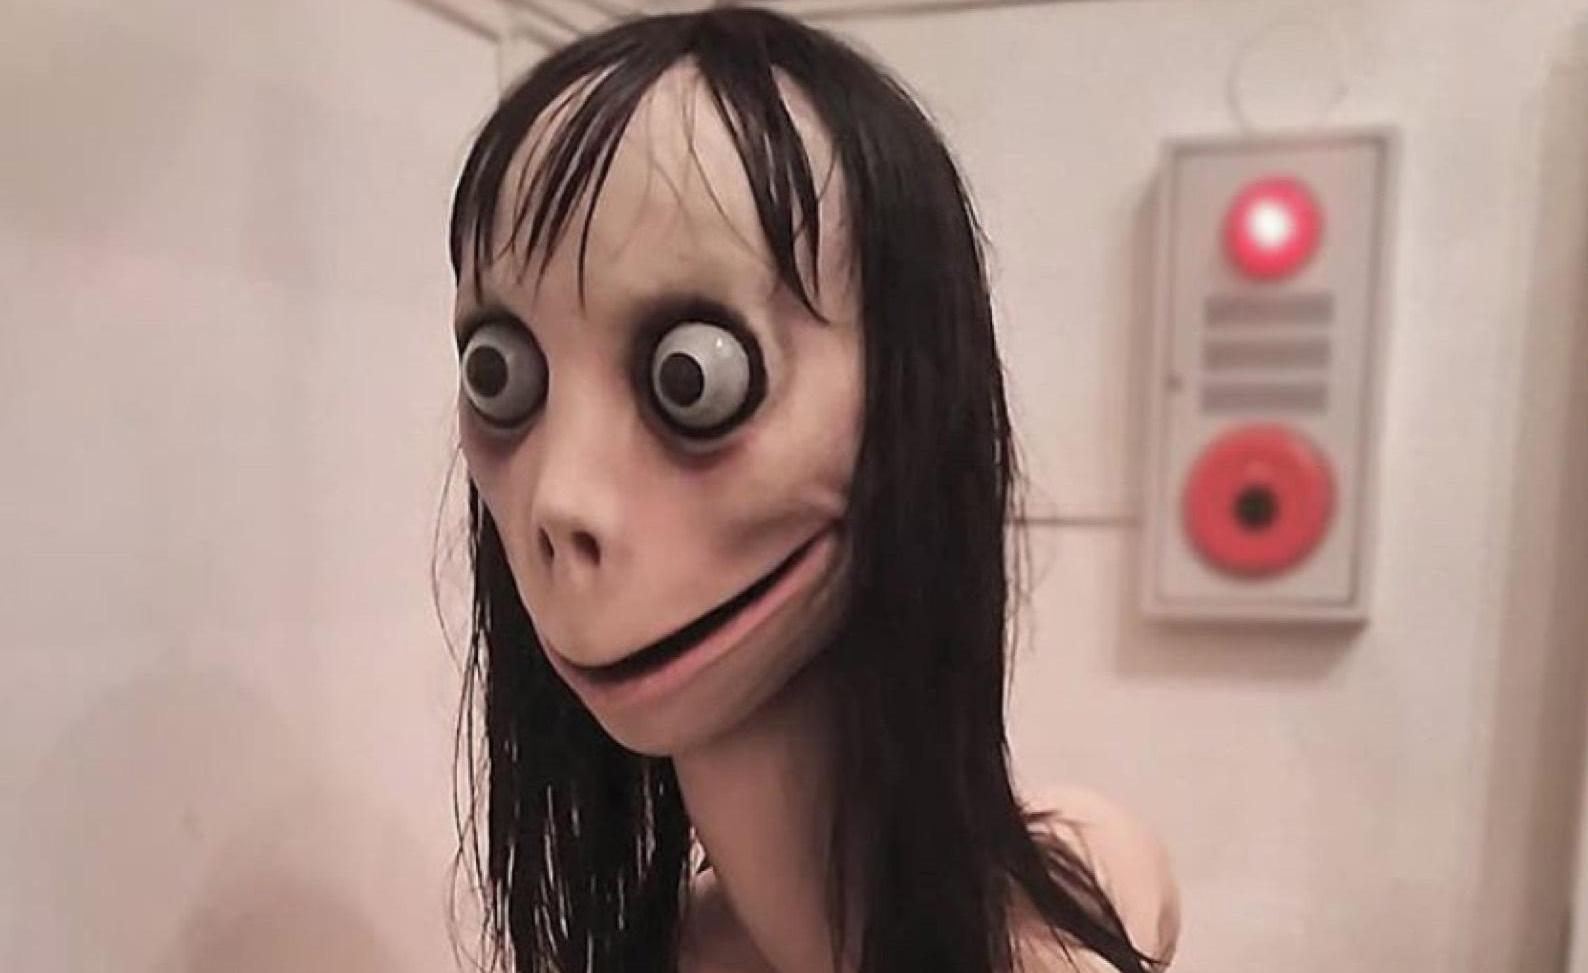 Momo Challenge picture